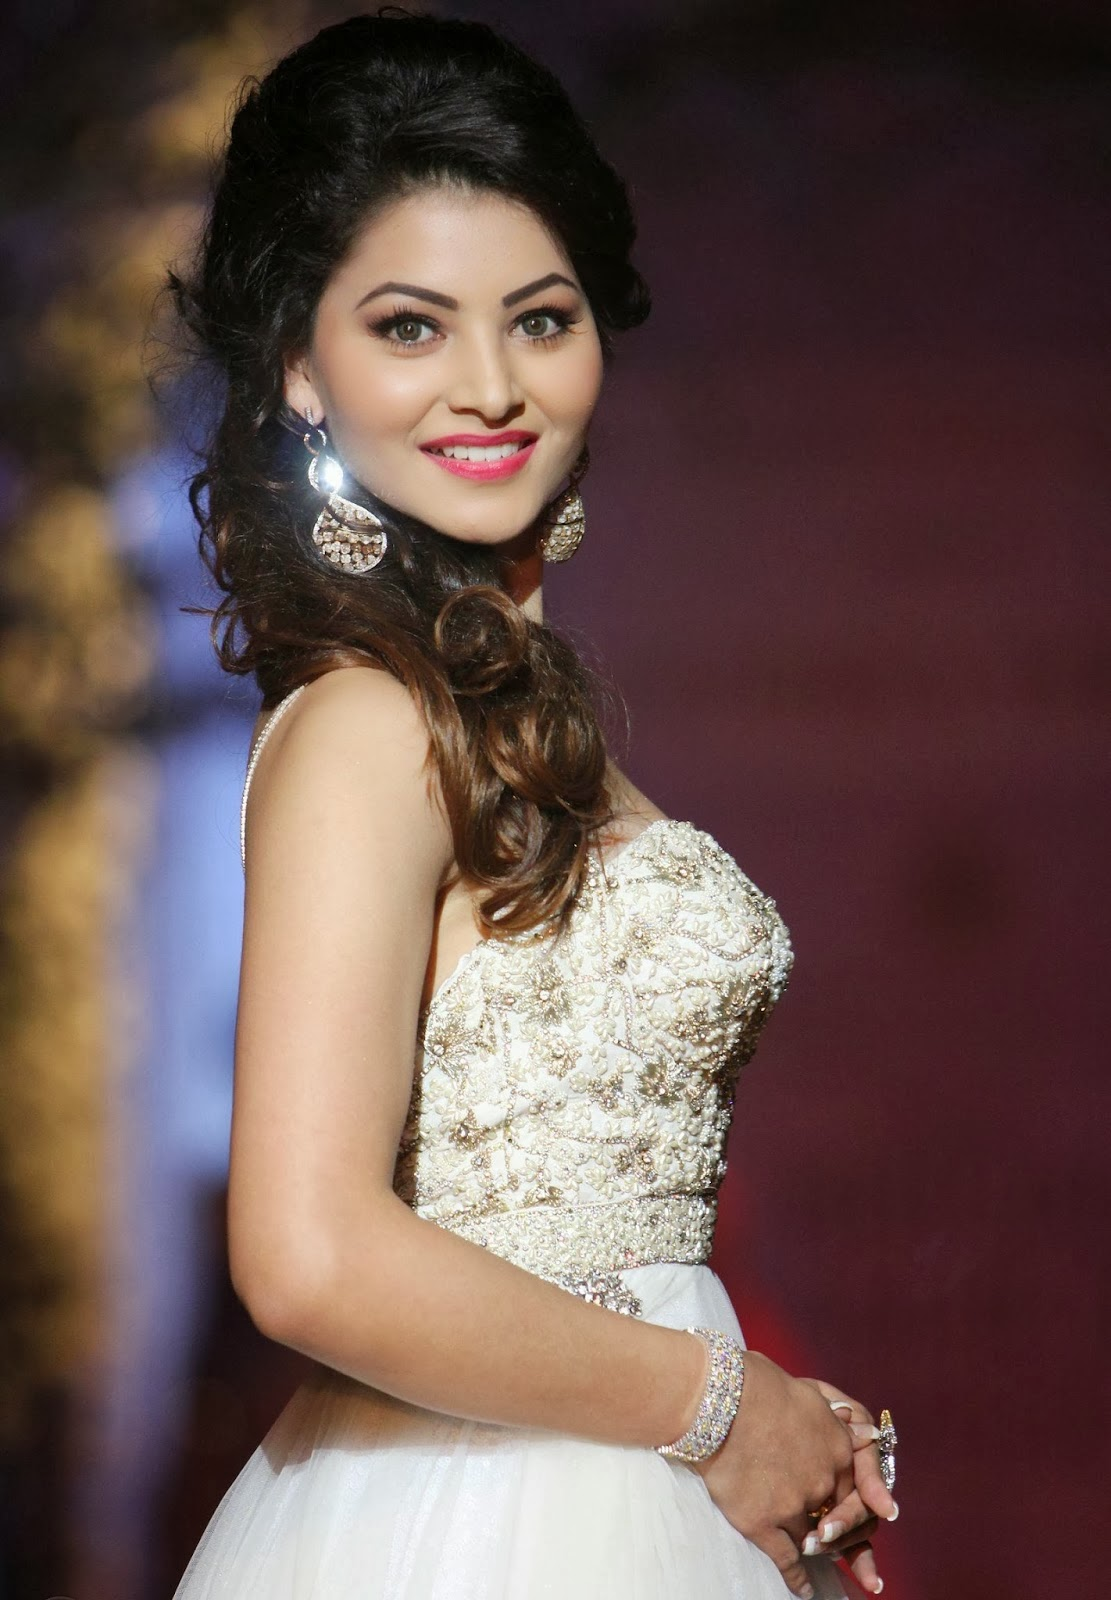 Urvashi Rautela Saree Cleavage Backless Hd Wallpapers